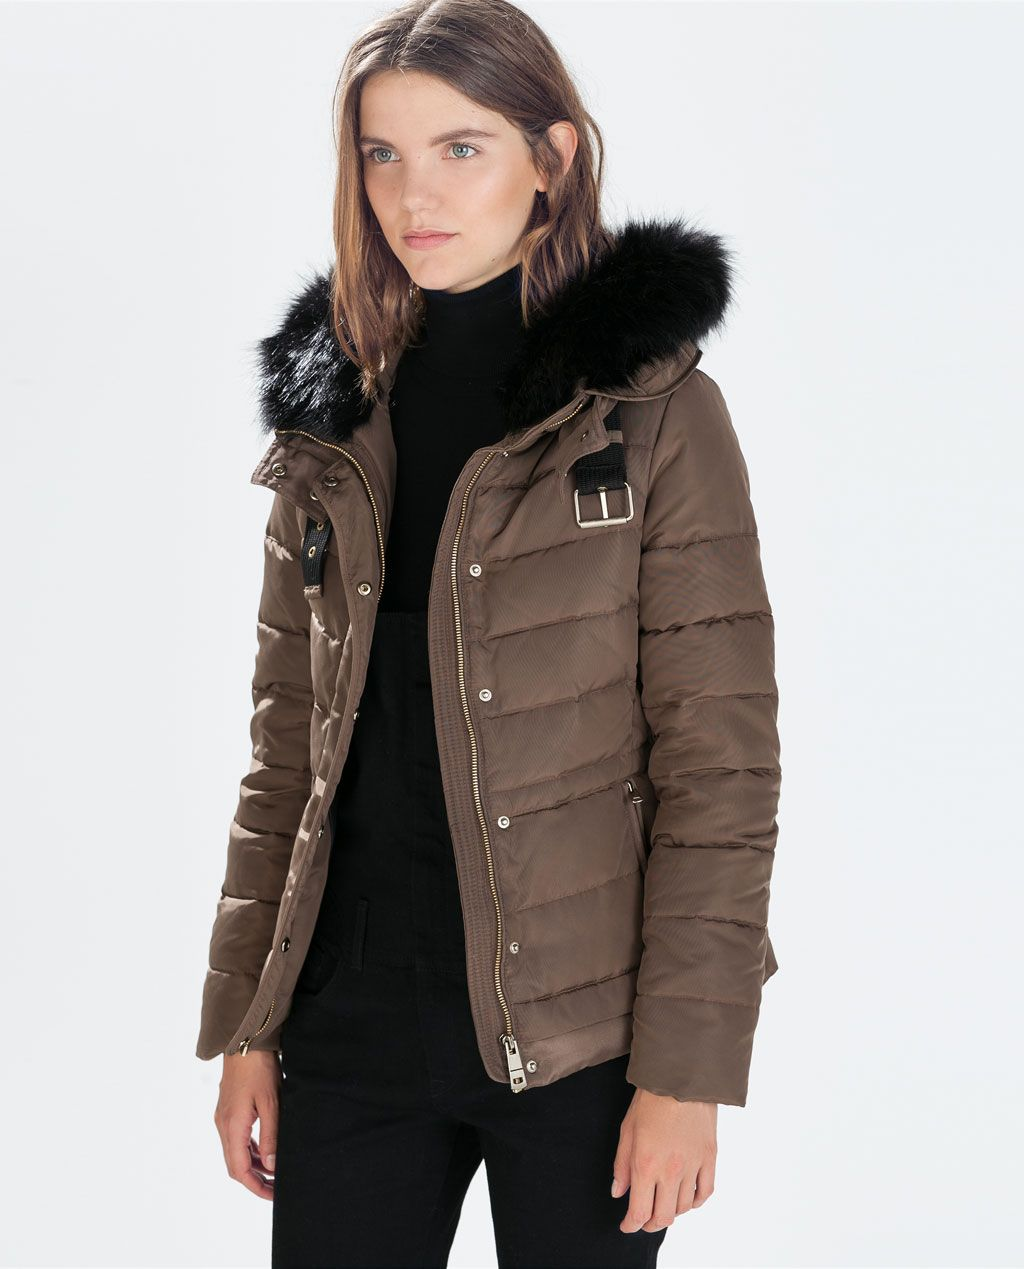 Womens short parka coats